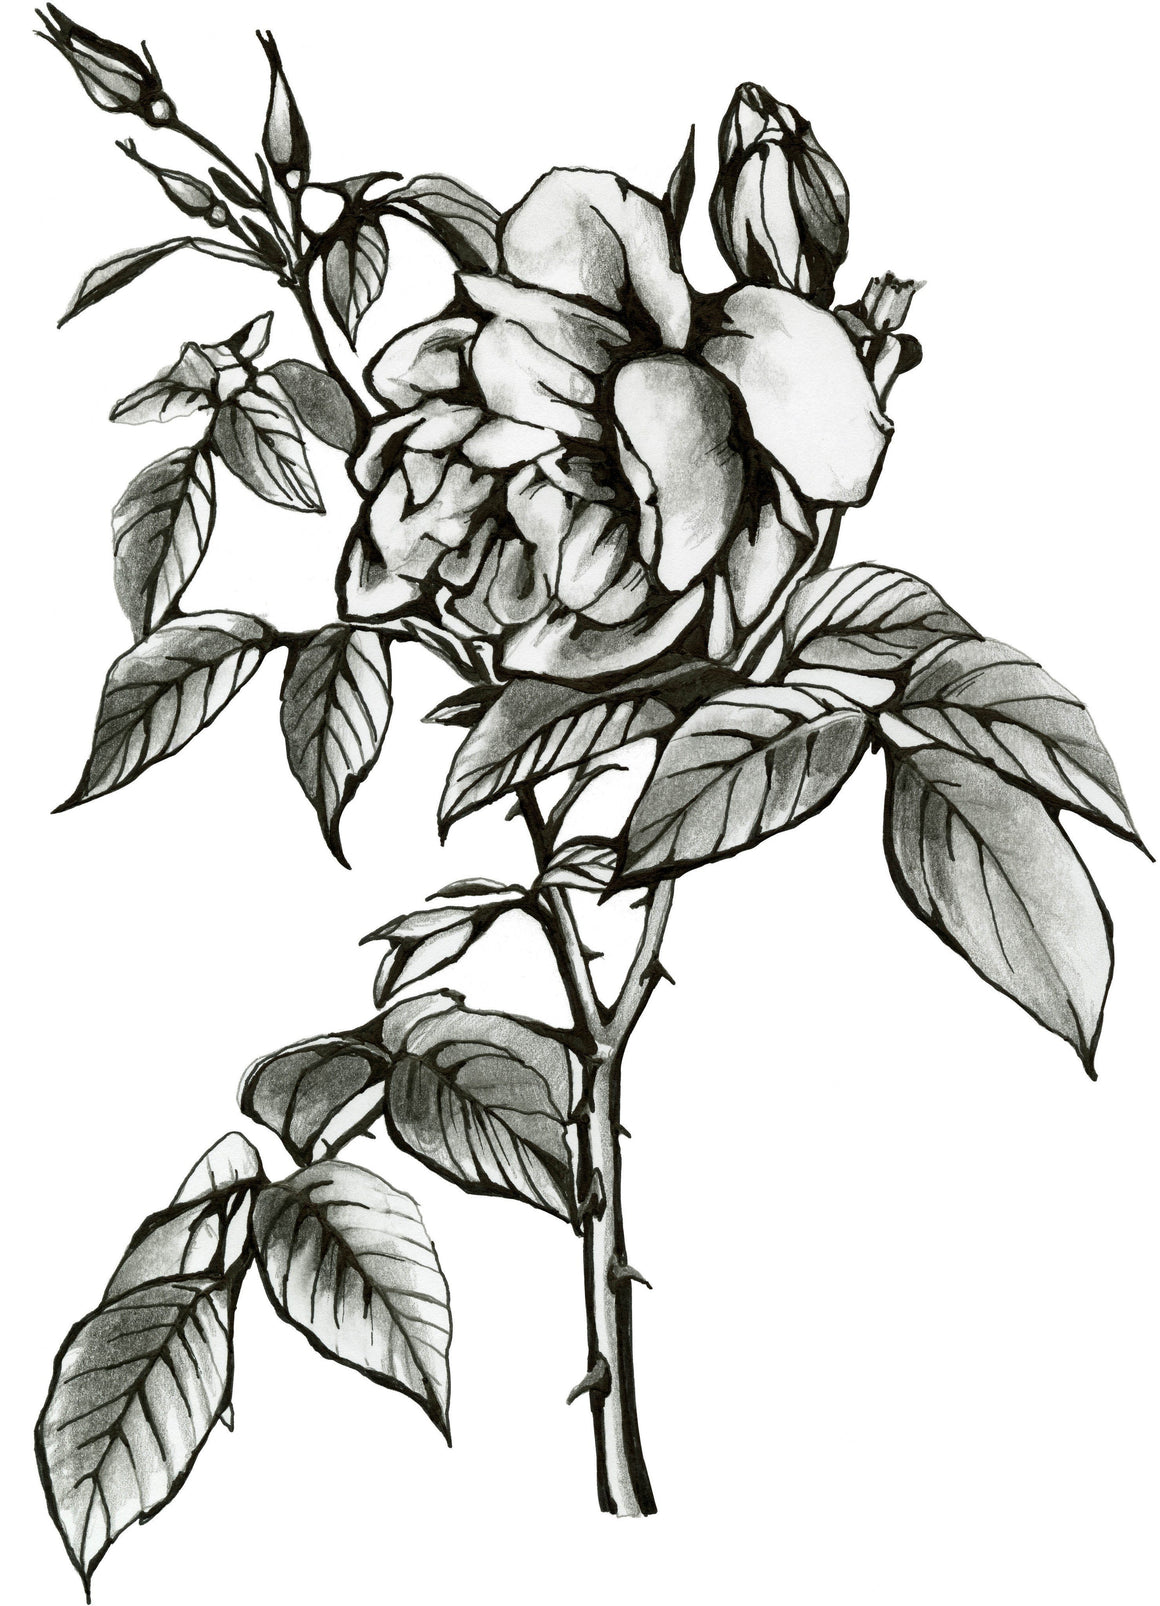 Hand drawn rose in black and white with a thorny stem and many leaves